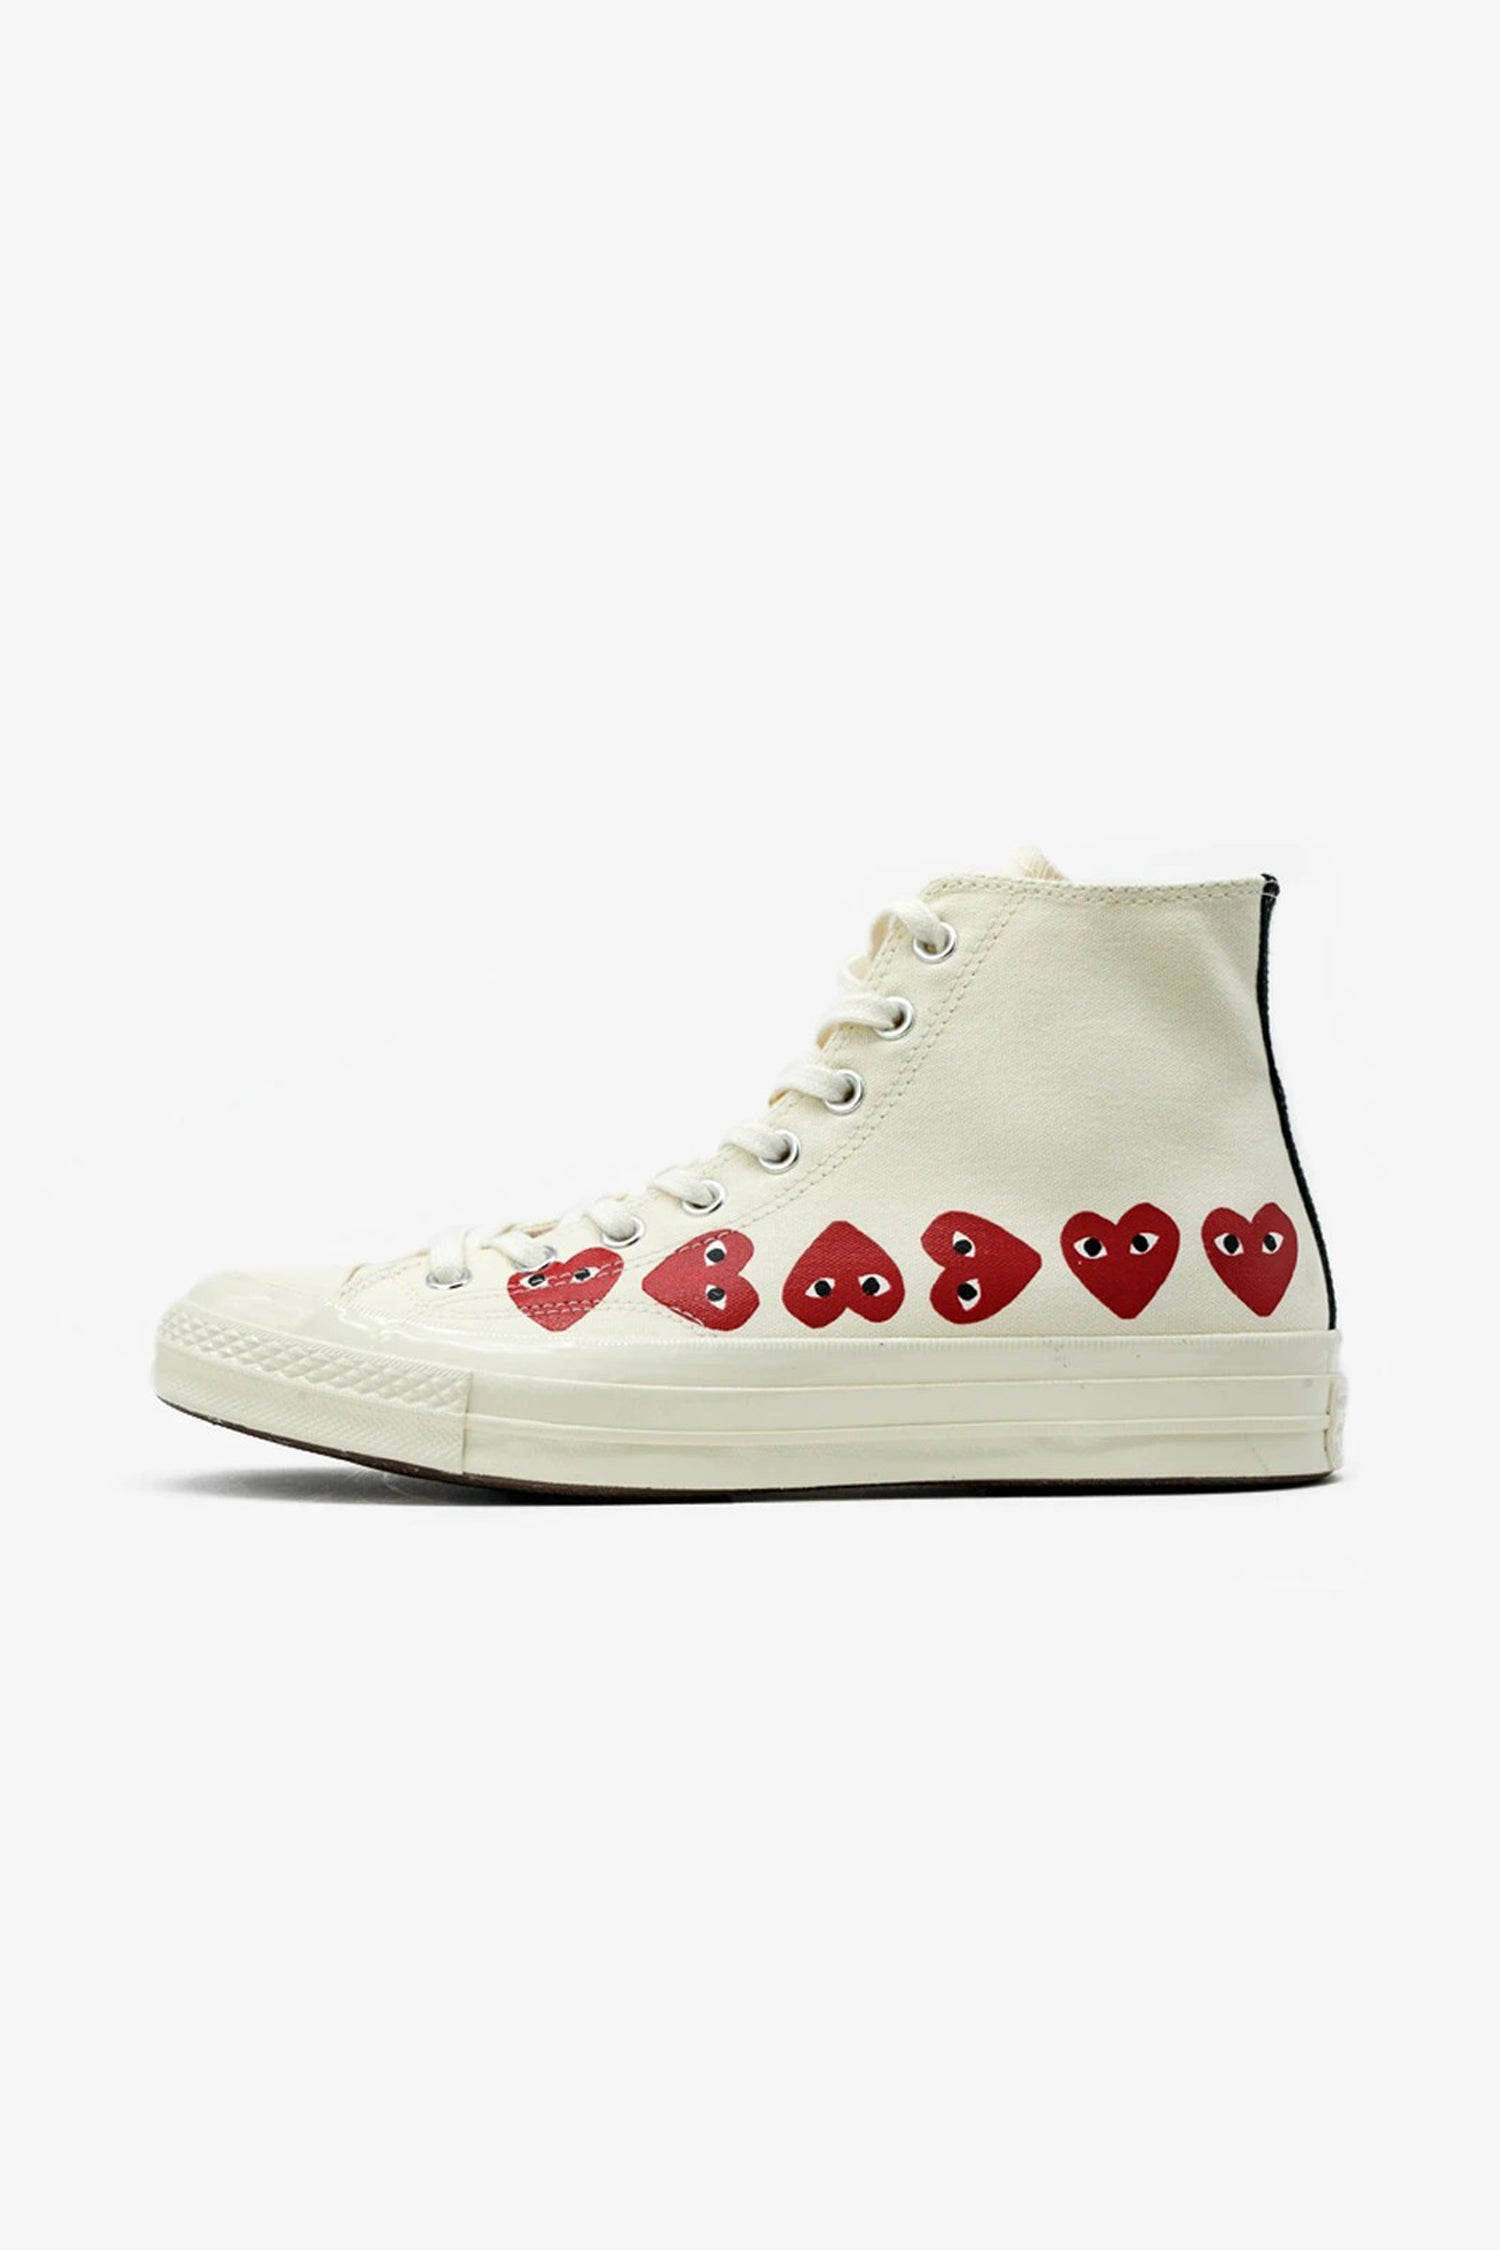 Selectshop FRAME - COMME DES GARCONS PLAY Converse Chuck Taylor All Star '70 High Multi Red Heart Footwear Dubai